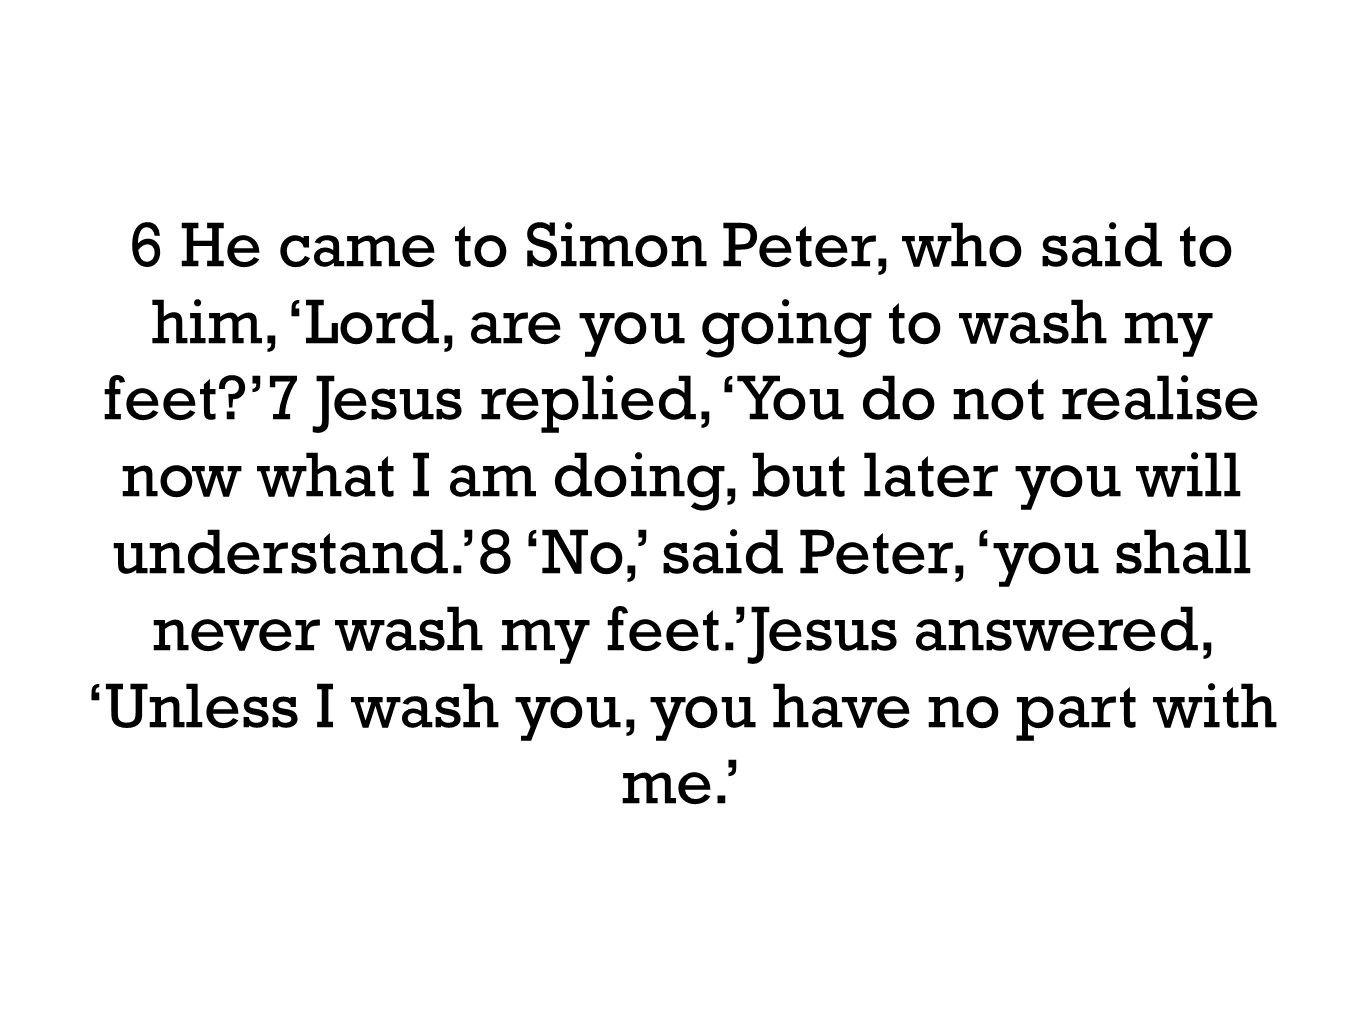 9 'Then, Lord,' Simon Peter replied, 'not just my feet but my hands and my head as well!'10 Jesus answered, 'Those who have had a bath need only to wash their feet; their whole body is clean.